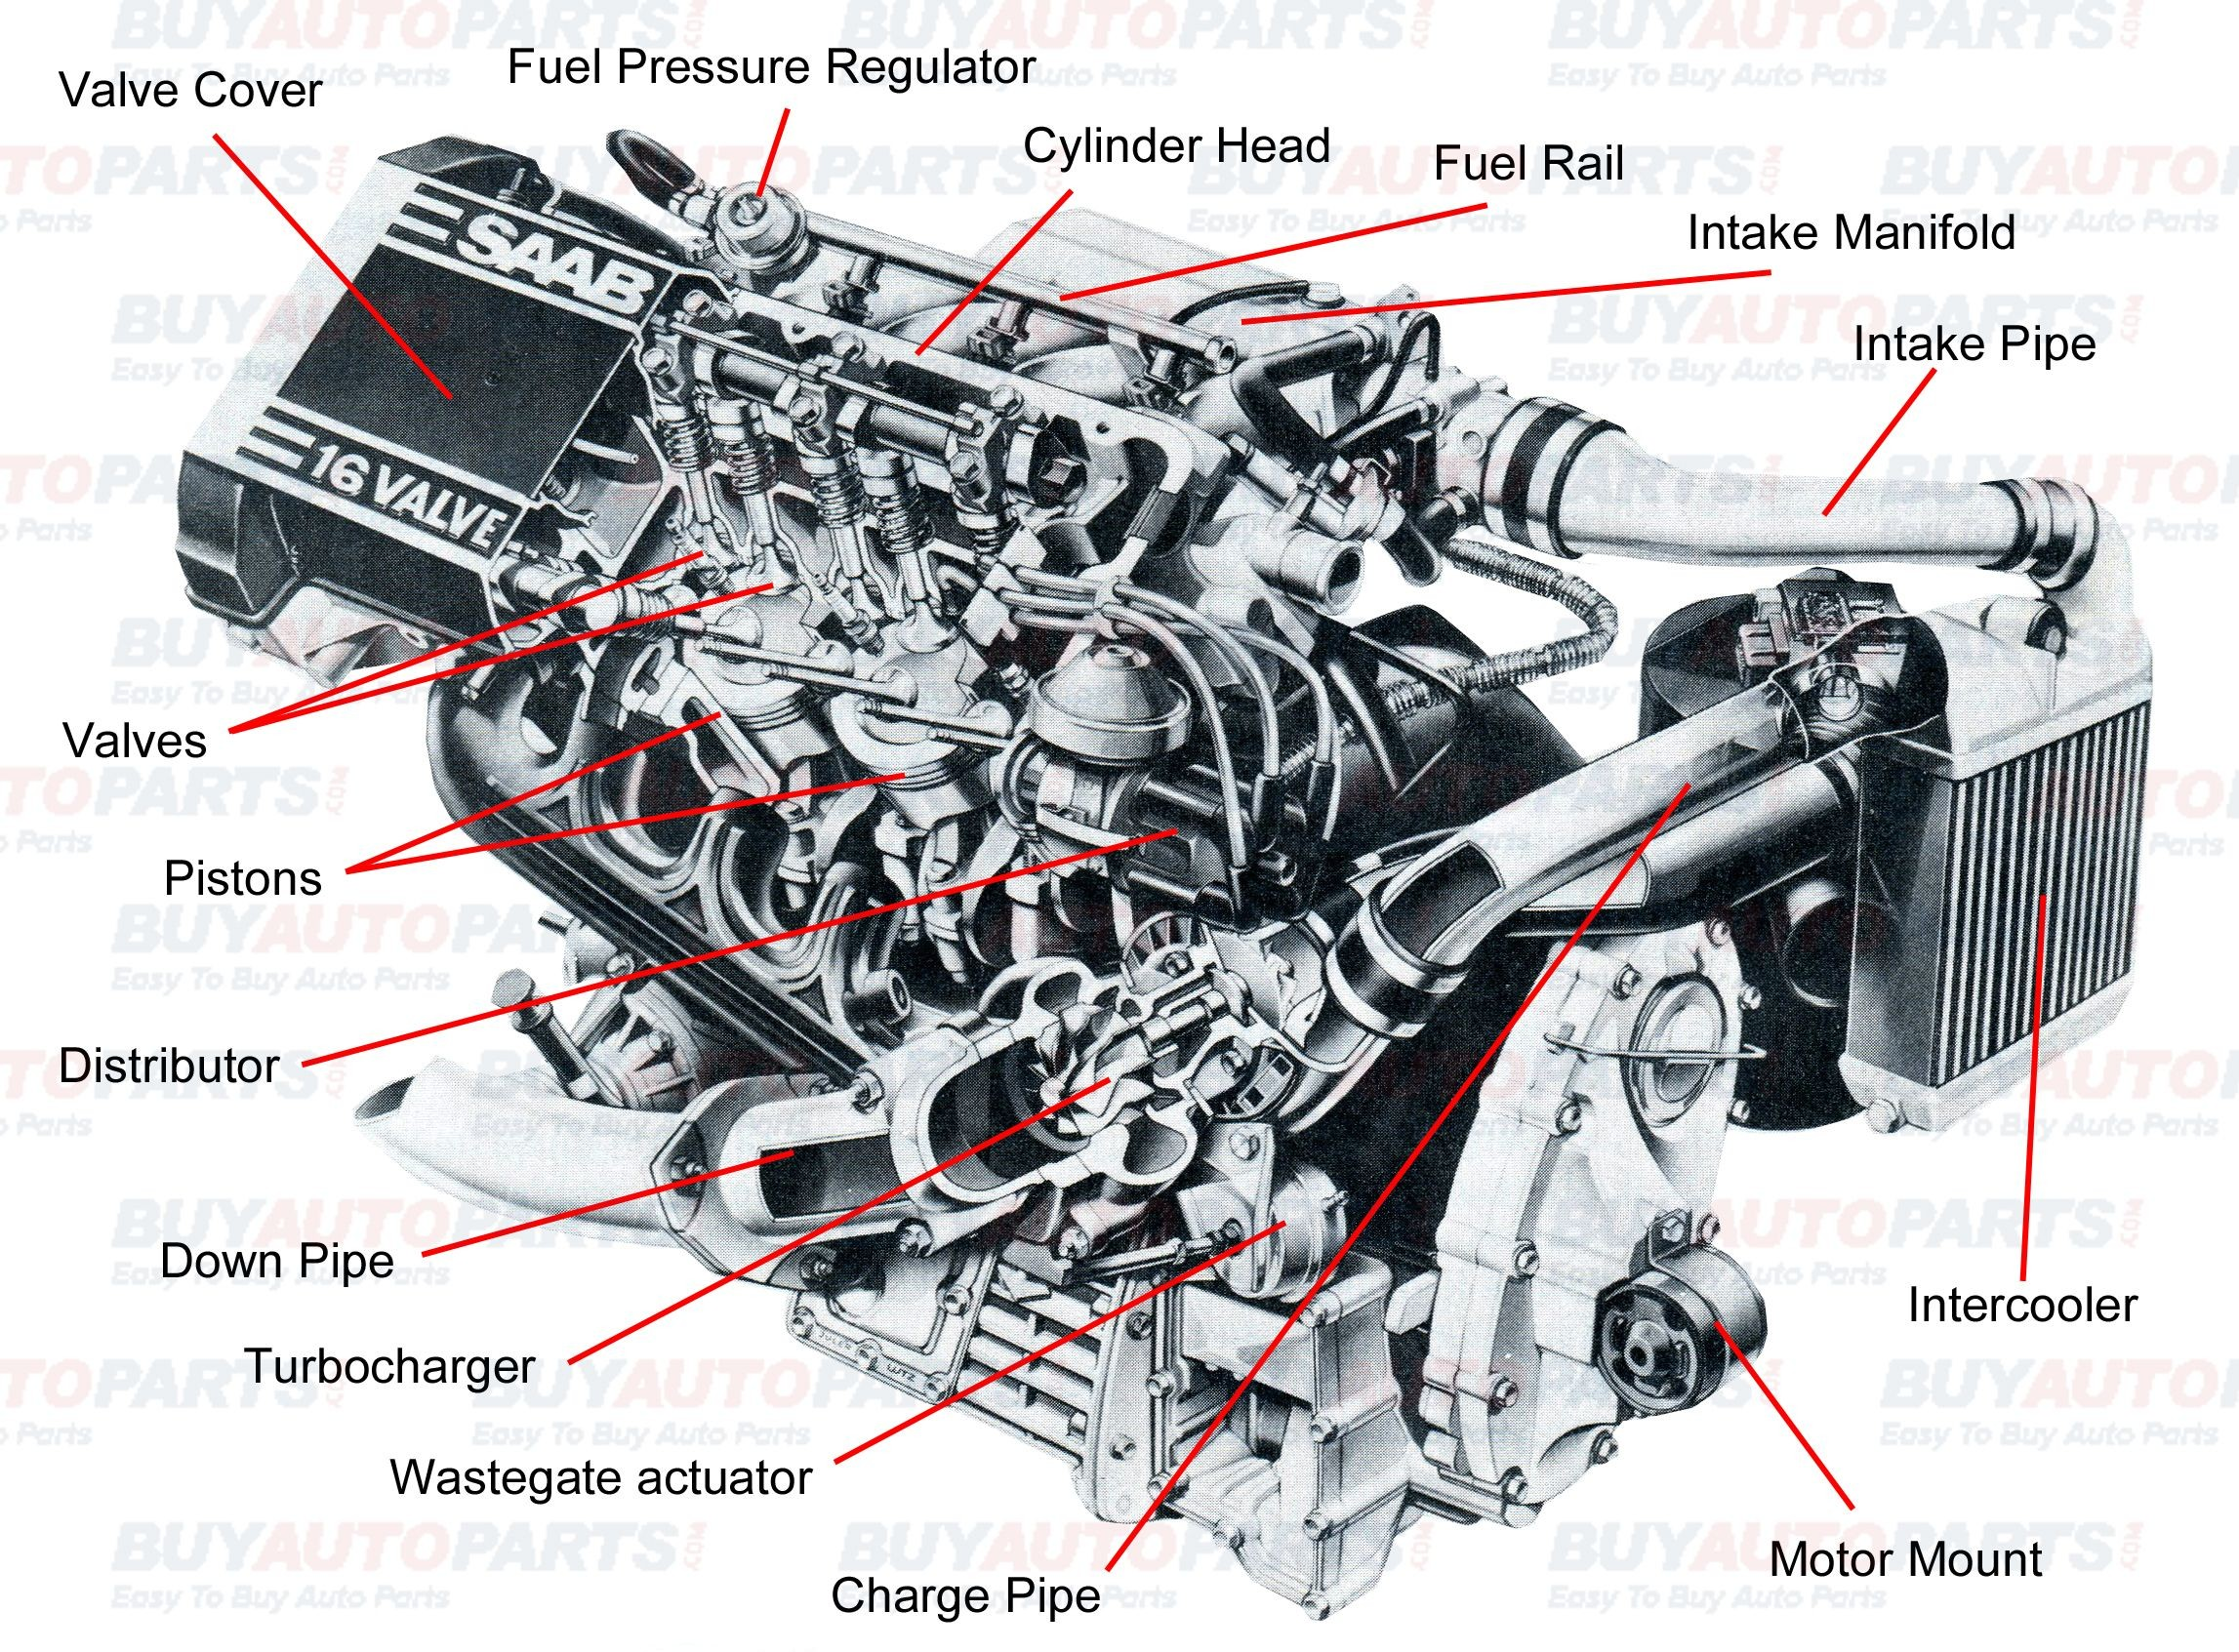 Mazda Rotary Engine Diagram Pin by Jimmiejanet Testellamwfz On What Does An Engine with Turbo Of Mazda Rotary Engine Diagram